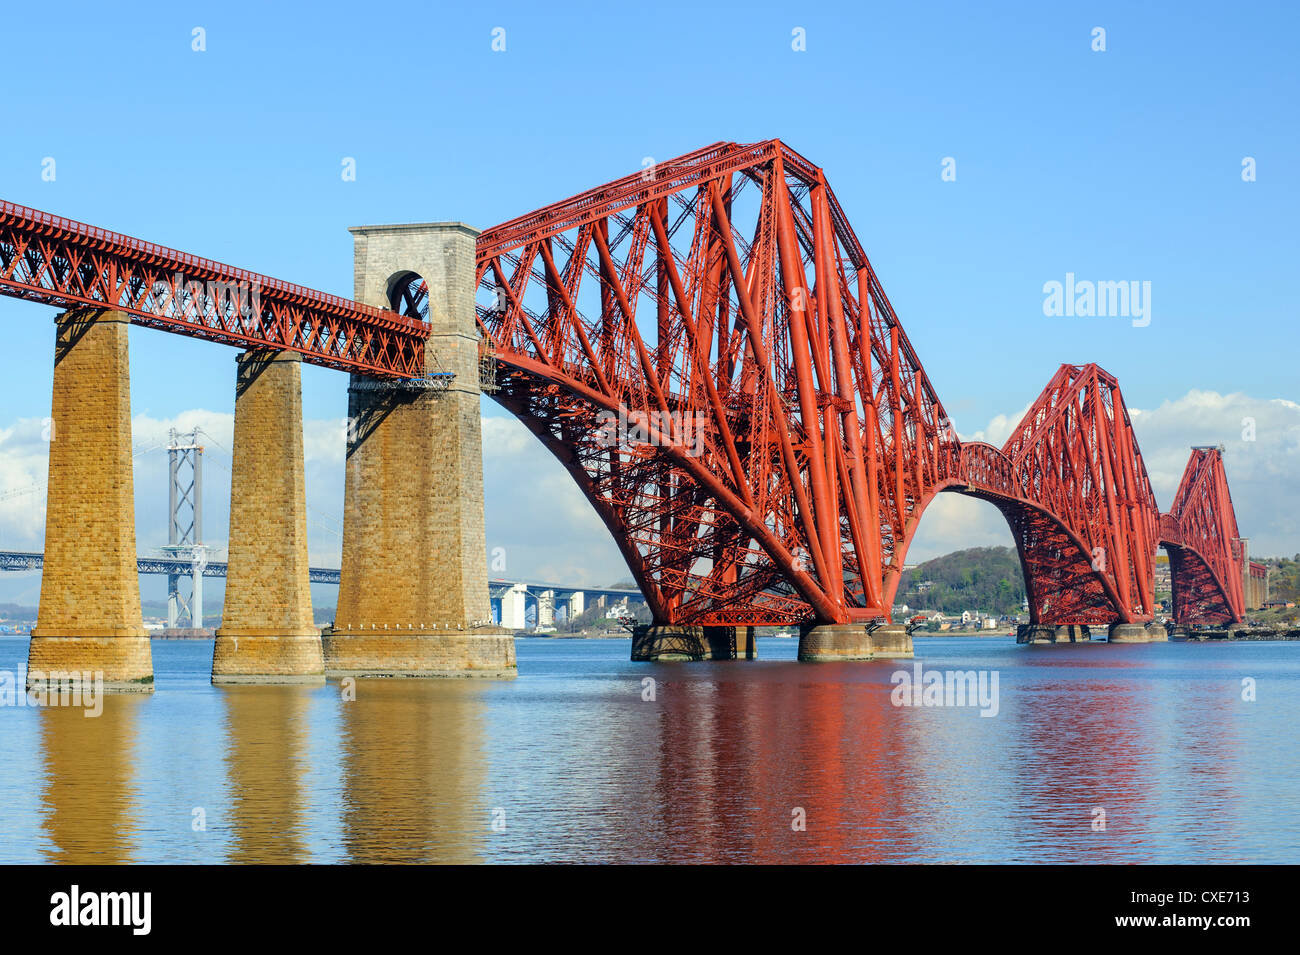 Forth Rail Bridge over the Firth of Forth, South Queensferry near Edinburgh, Lothian, Scotland - Stock Image